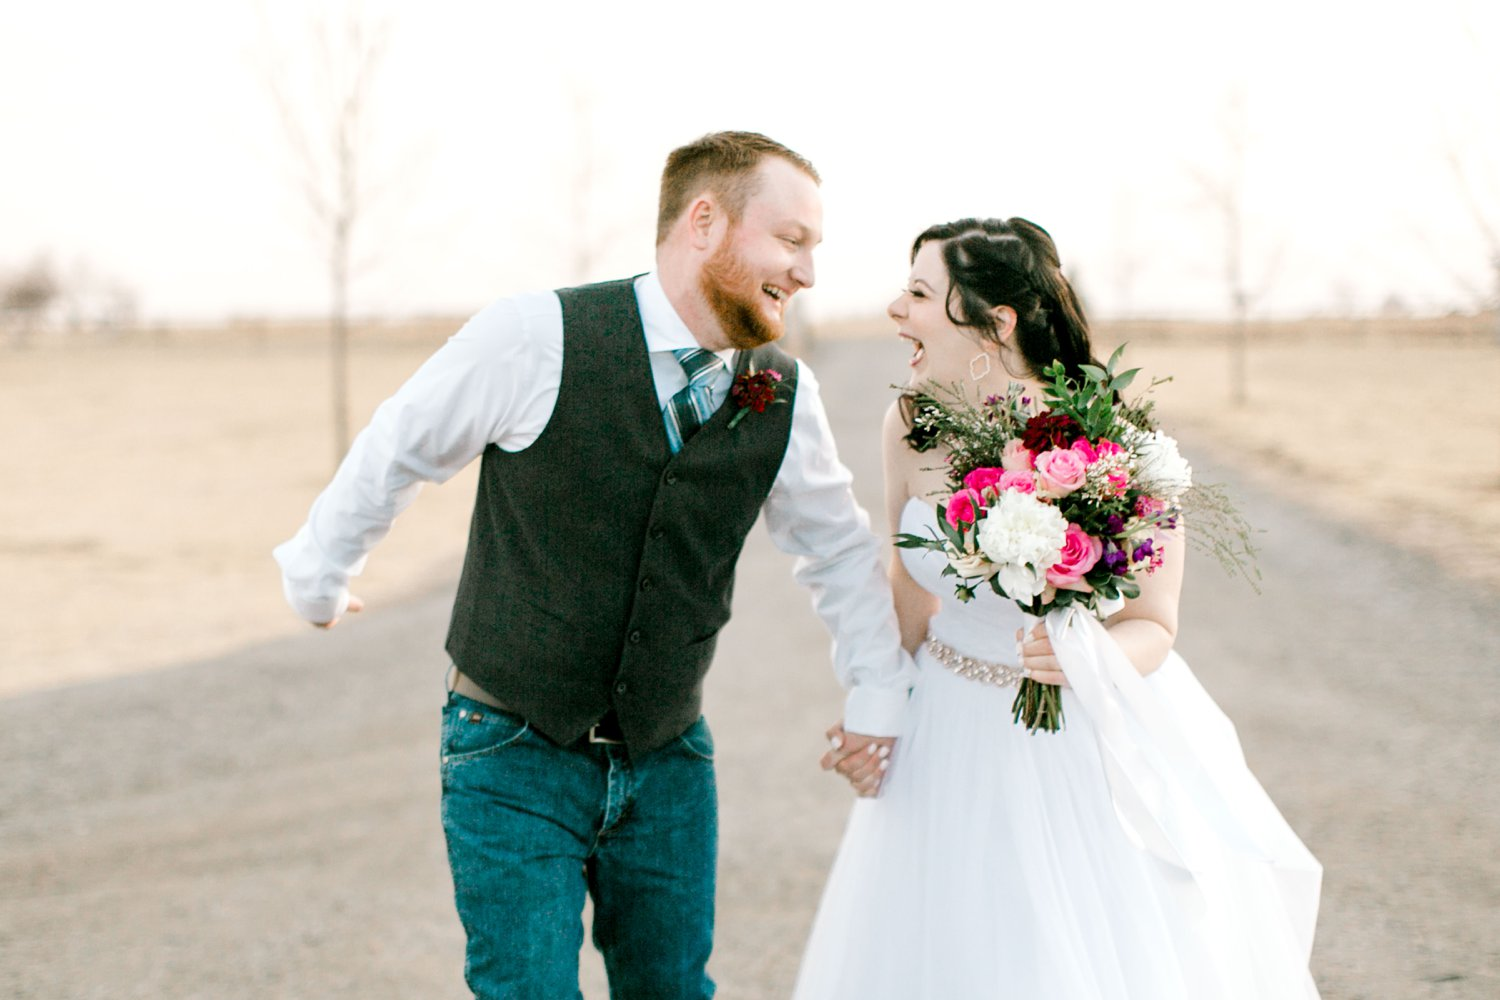 Autumn-Oaks-Events-Morgan-Andy-Lane-Wedding-Lubbock-Photography__0090.jpg